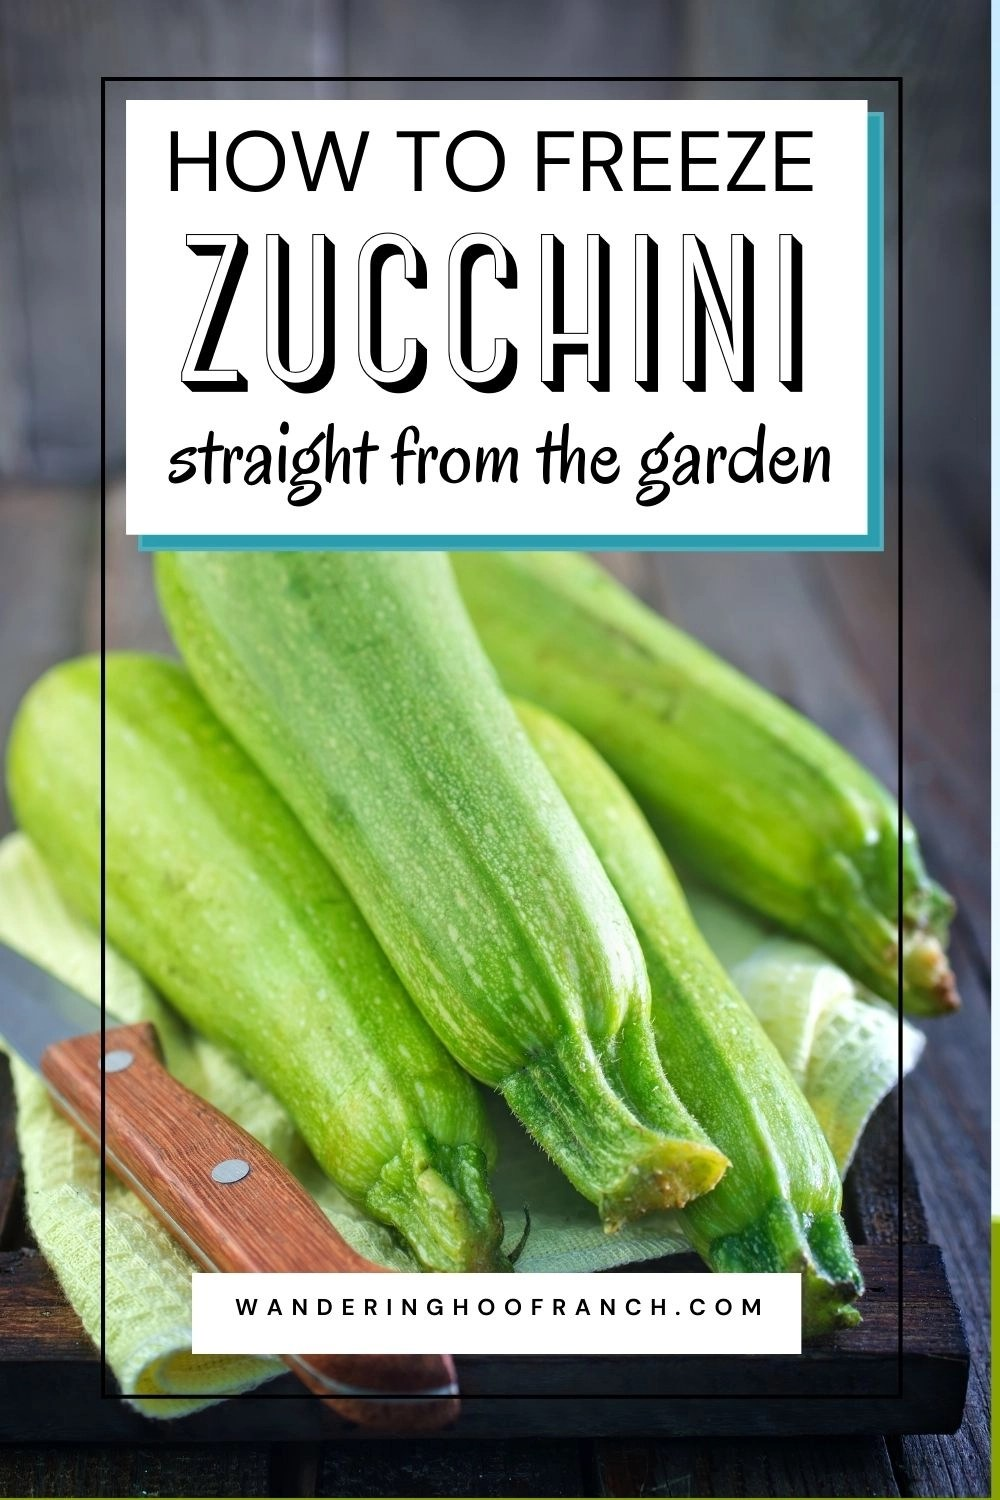 how to freeze zucchini straight from the garden pin stack of green zucchini sitting on country with dishcloth and knife